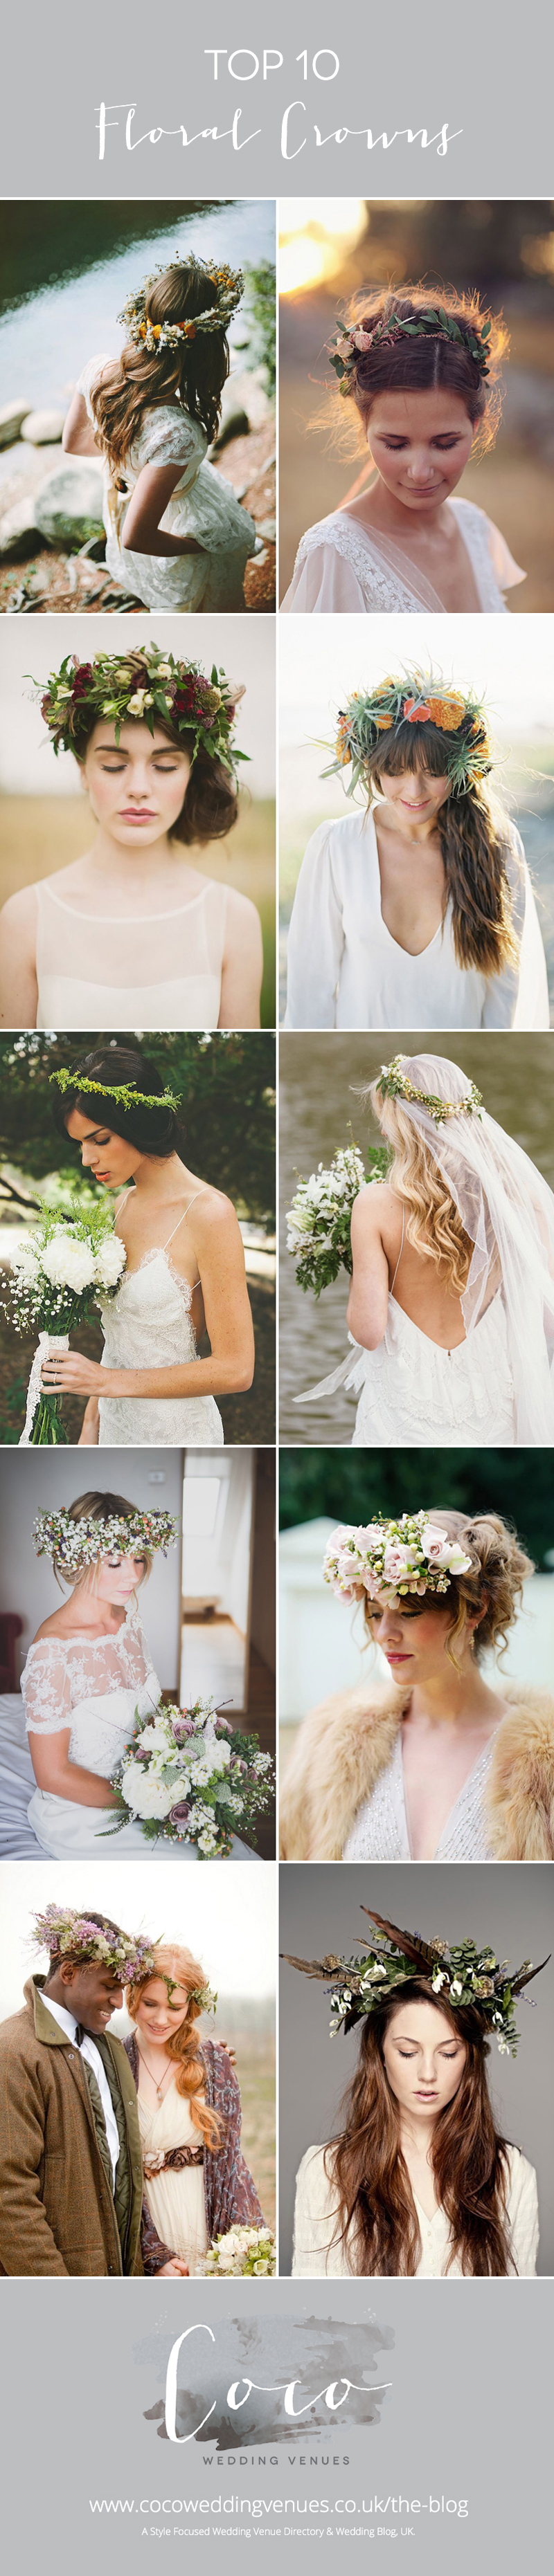 10-floral-crowns-bridal-inspiration-coco-wedding-venues-pinterest